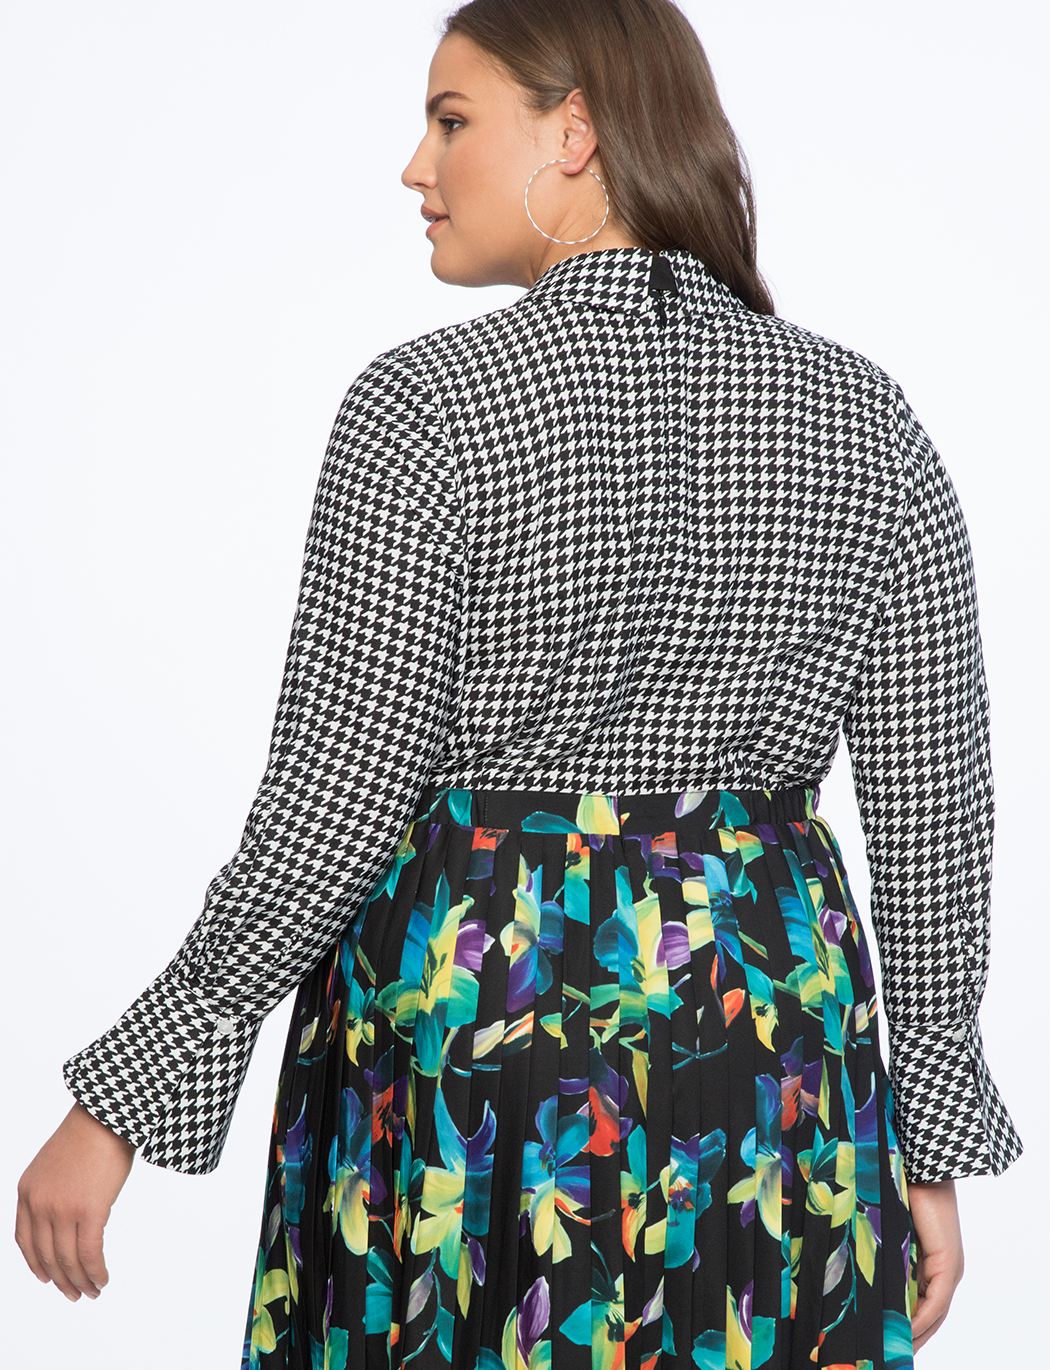 Printed Shirtdress with Pleated Skirt